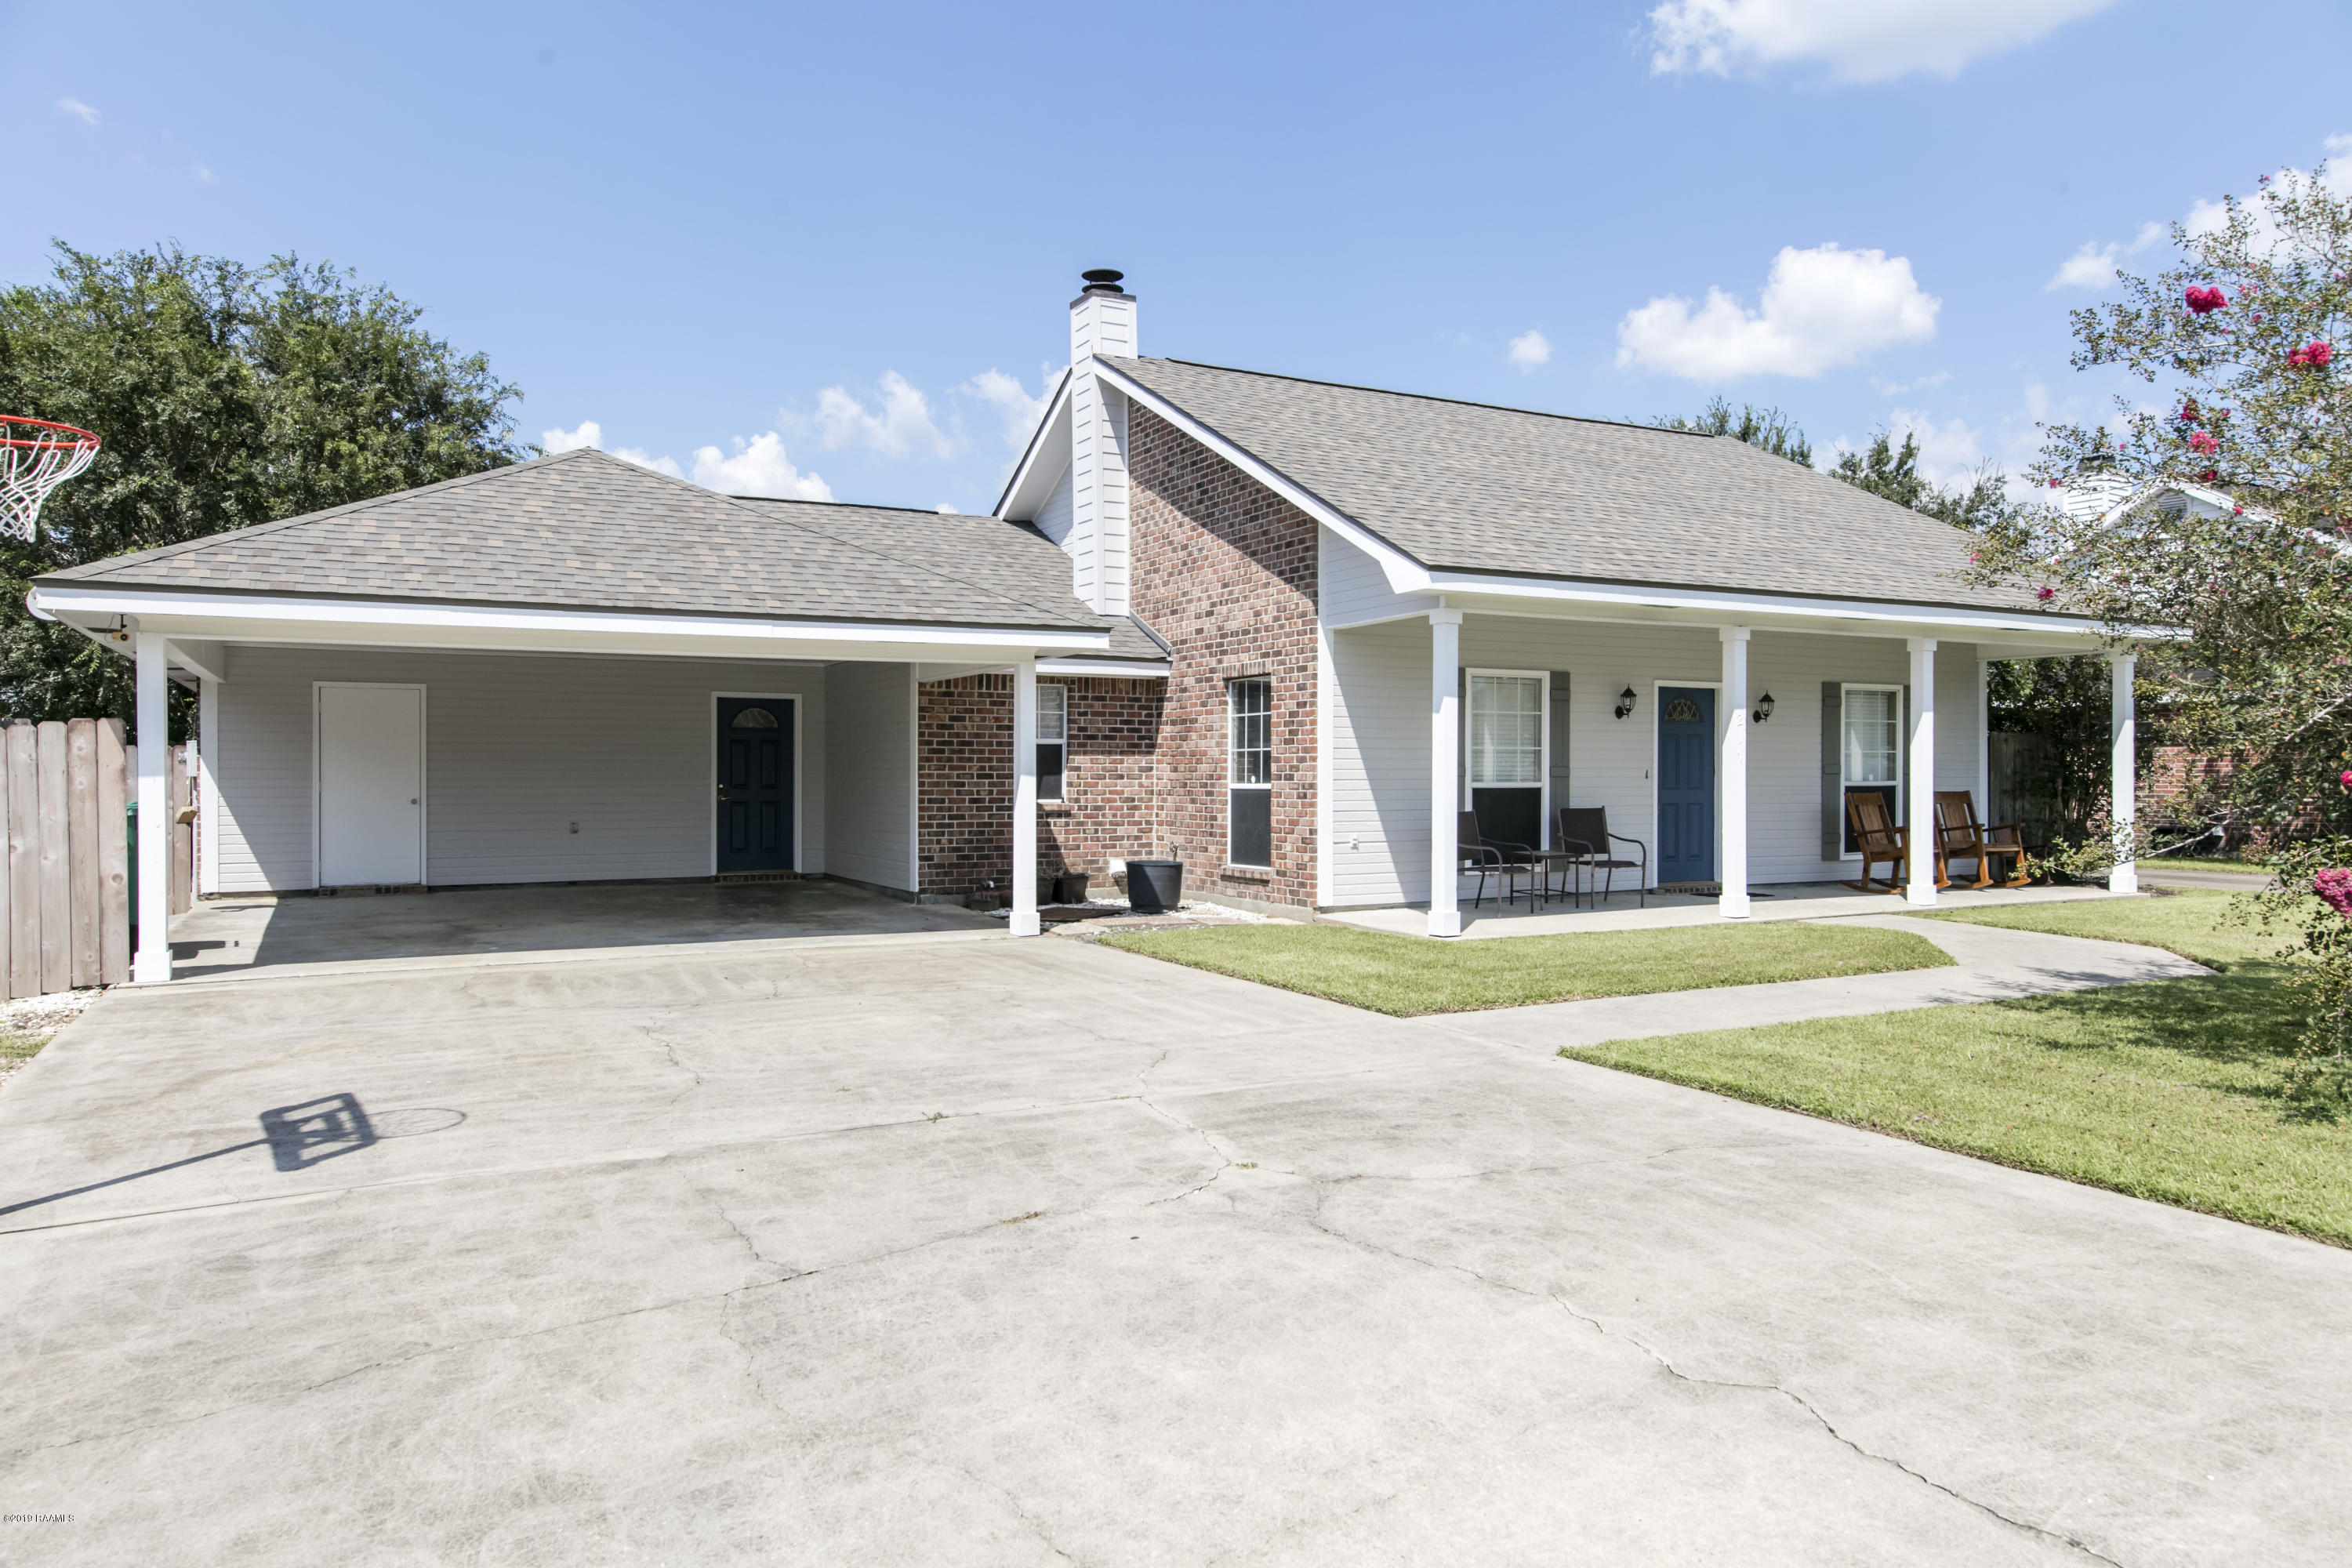 217 Sundown Drive, Broussard, LA 70518 Photo #3